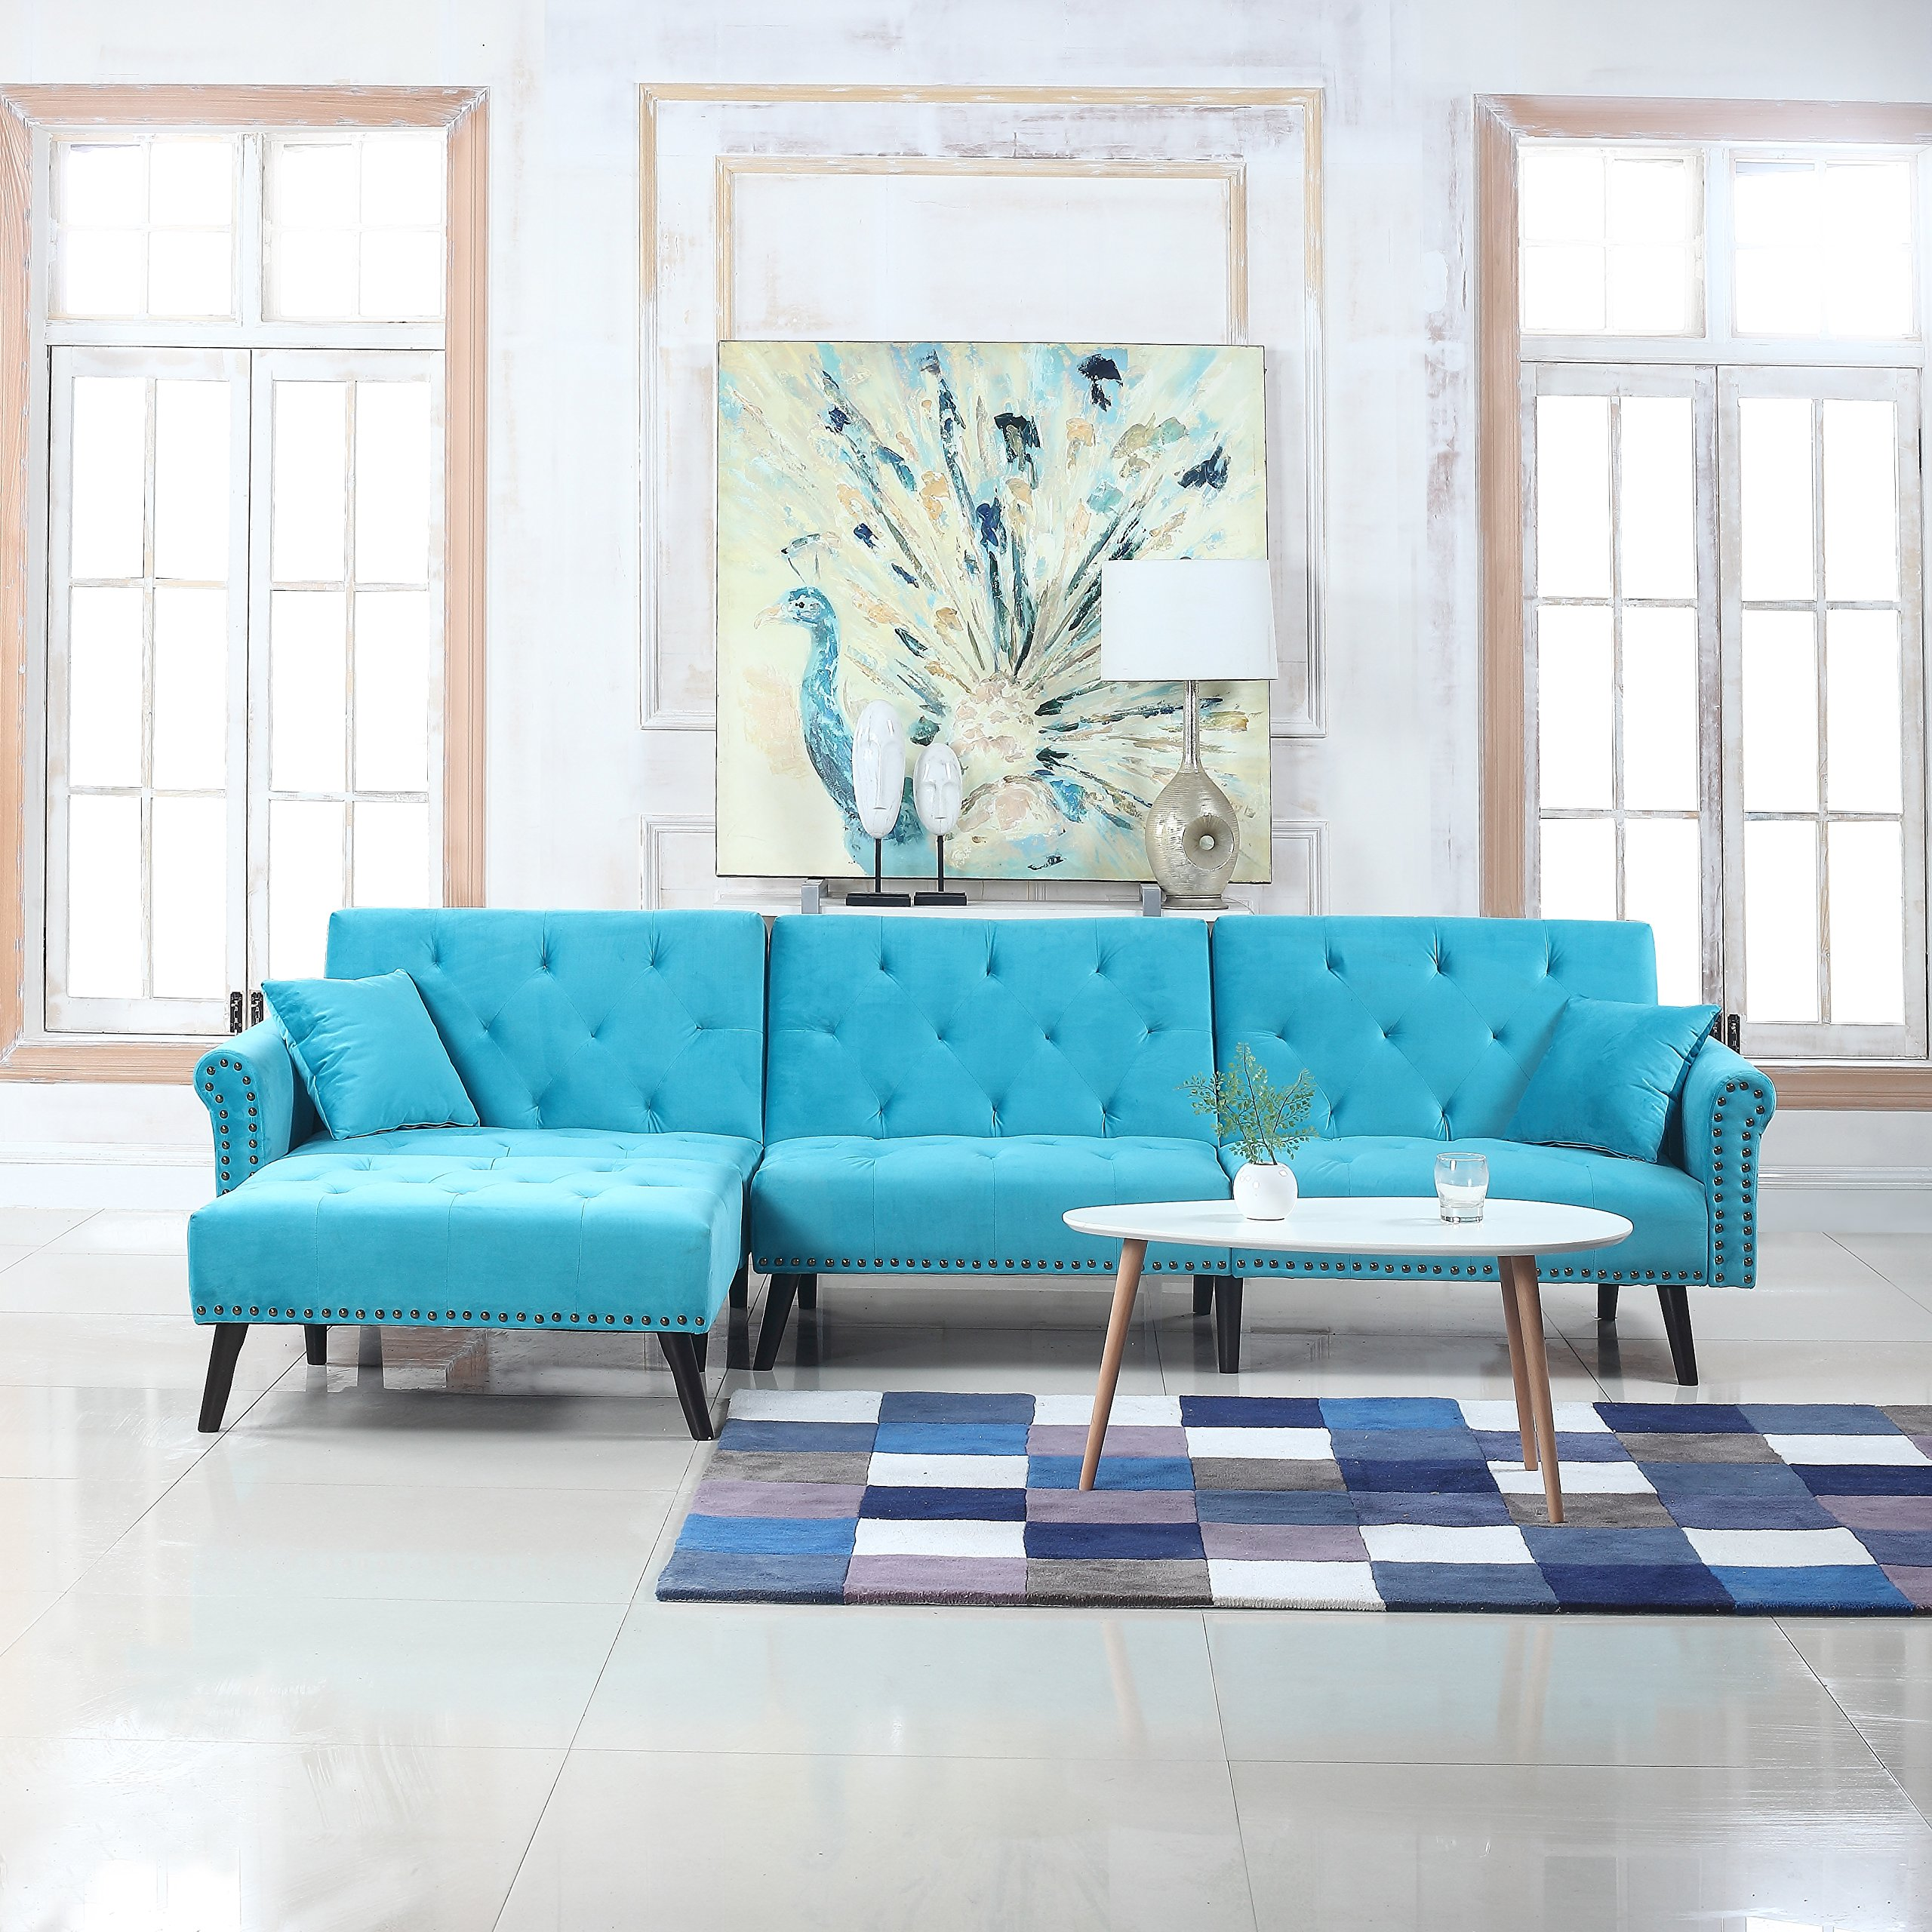 DIVANO ROMA FURNITURE Mid Century Modern Style Velvet Sleeper Futon Sofa, Living Room L Shape Sectional Couch with Reclining Backrest and Chaise Lounge